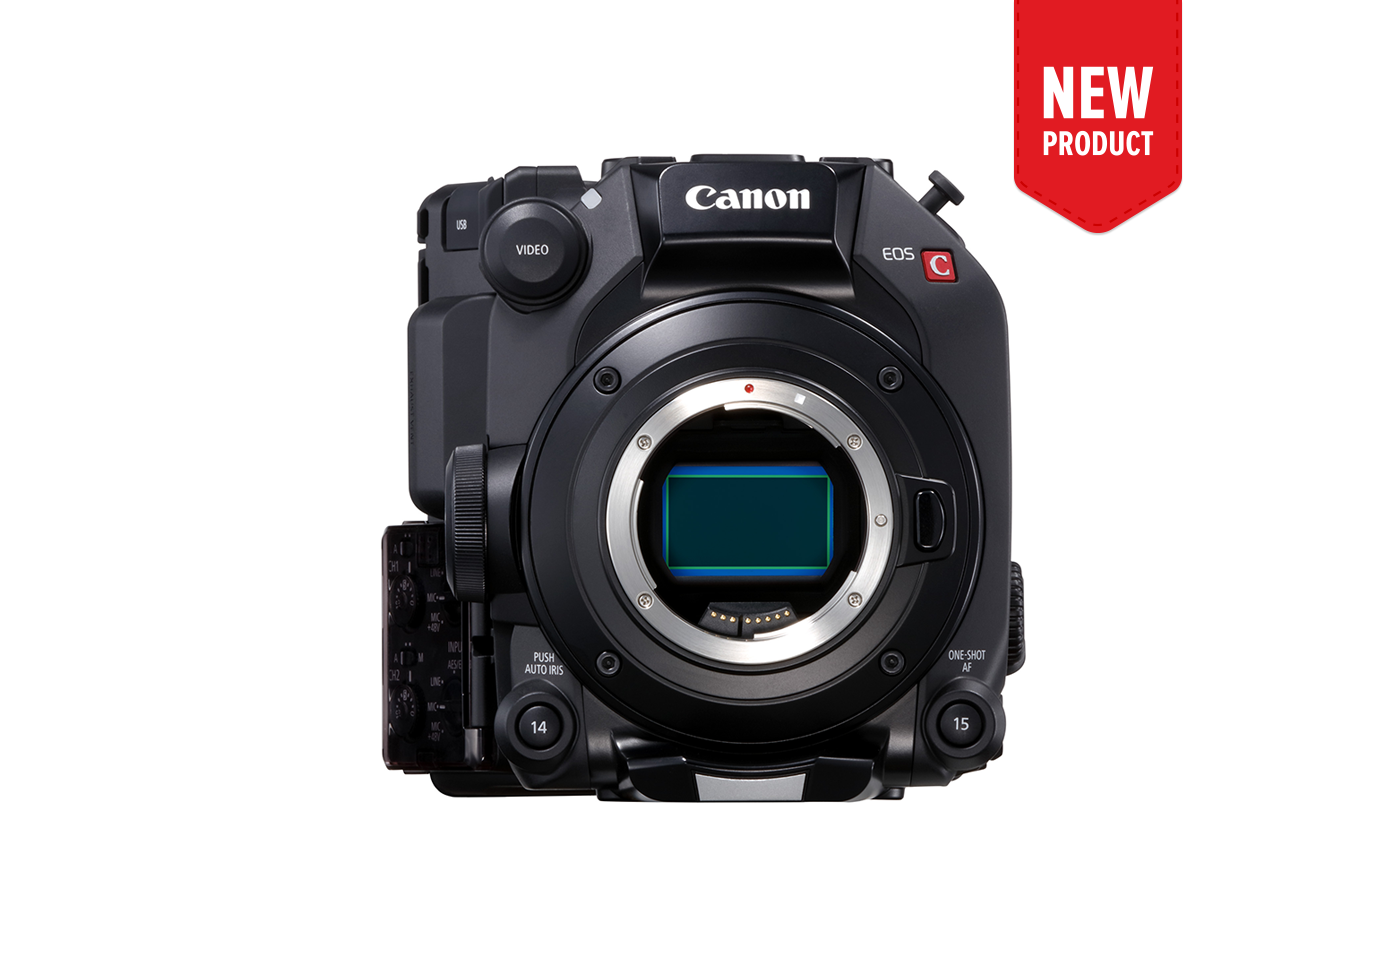 Product image for EOS C500 Mark II